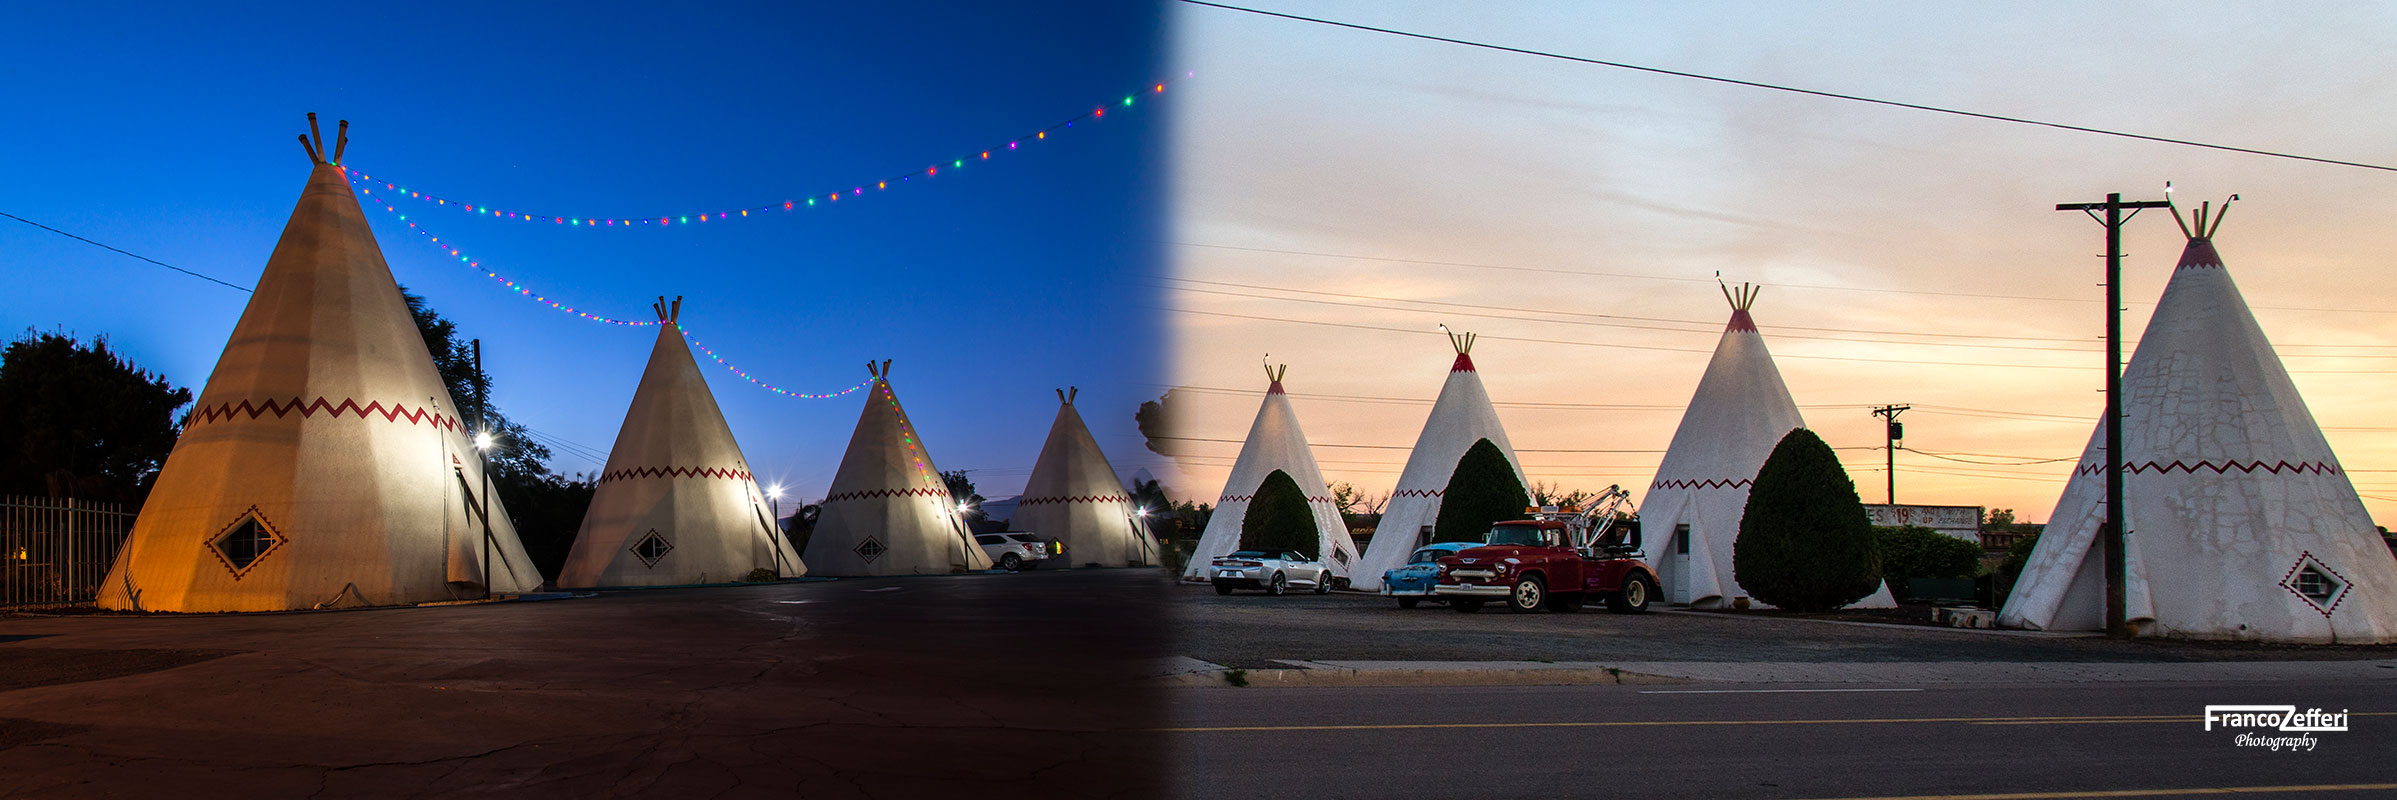 wigwams_web2